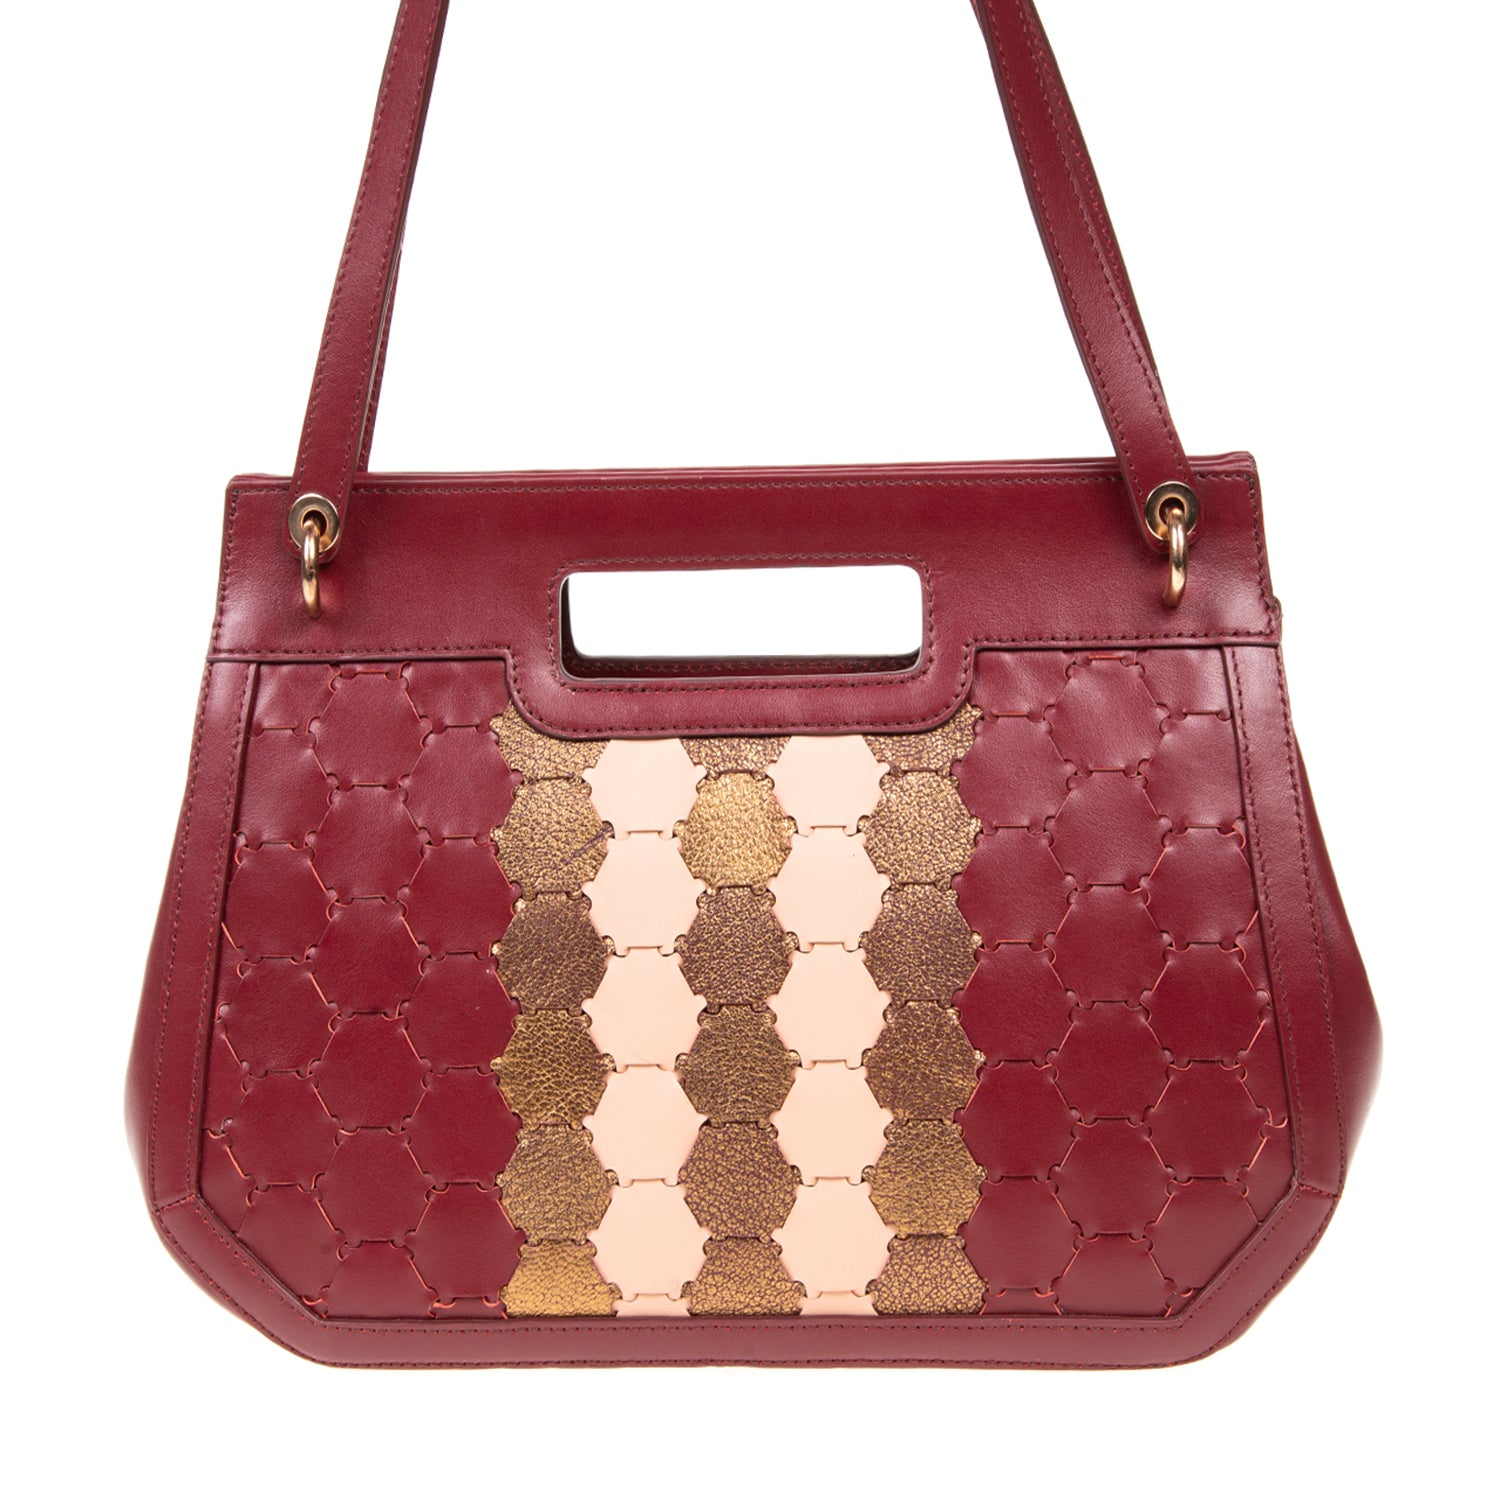 A F I F E | Leather Tote Bag Bordeaux/Bronze